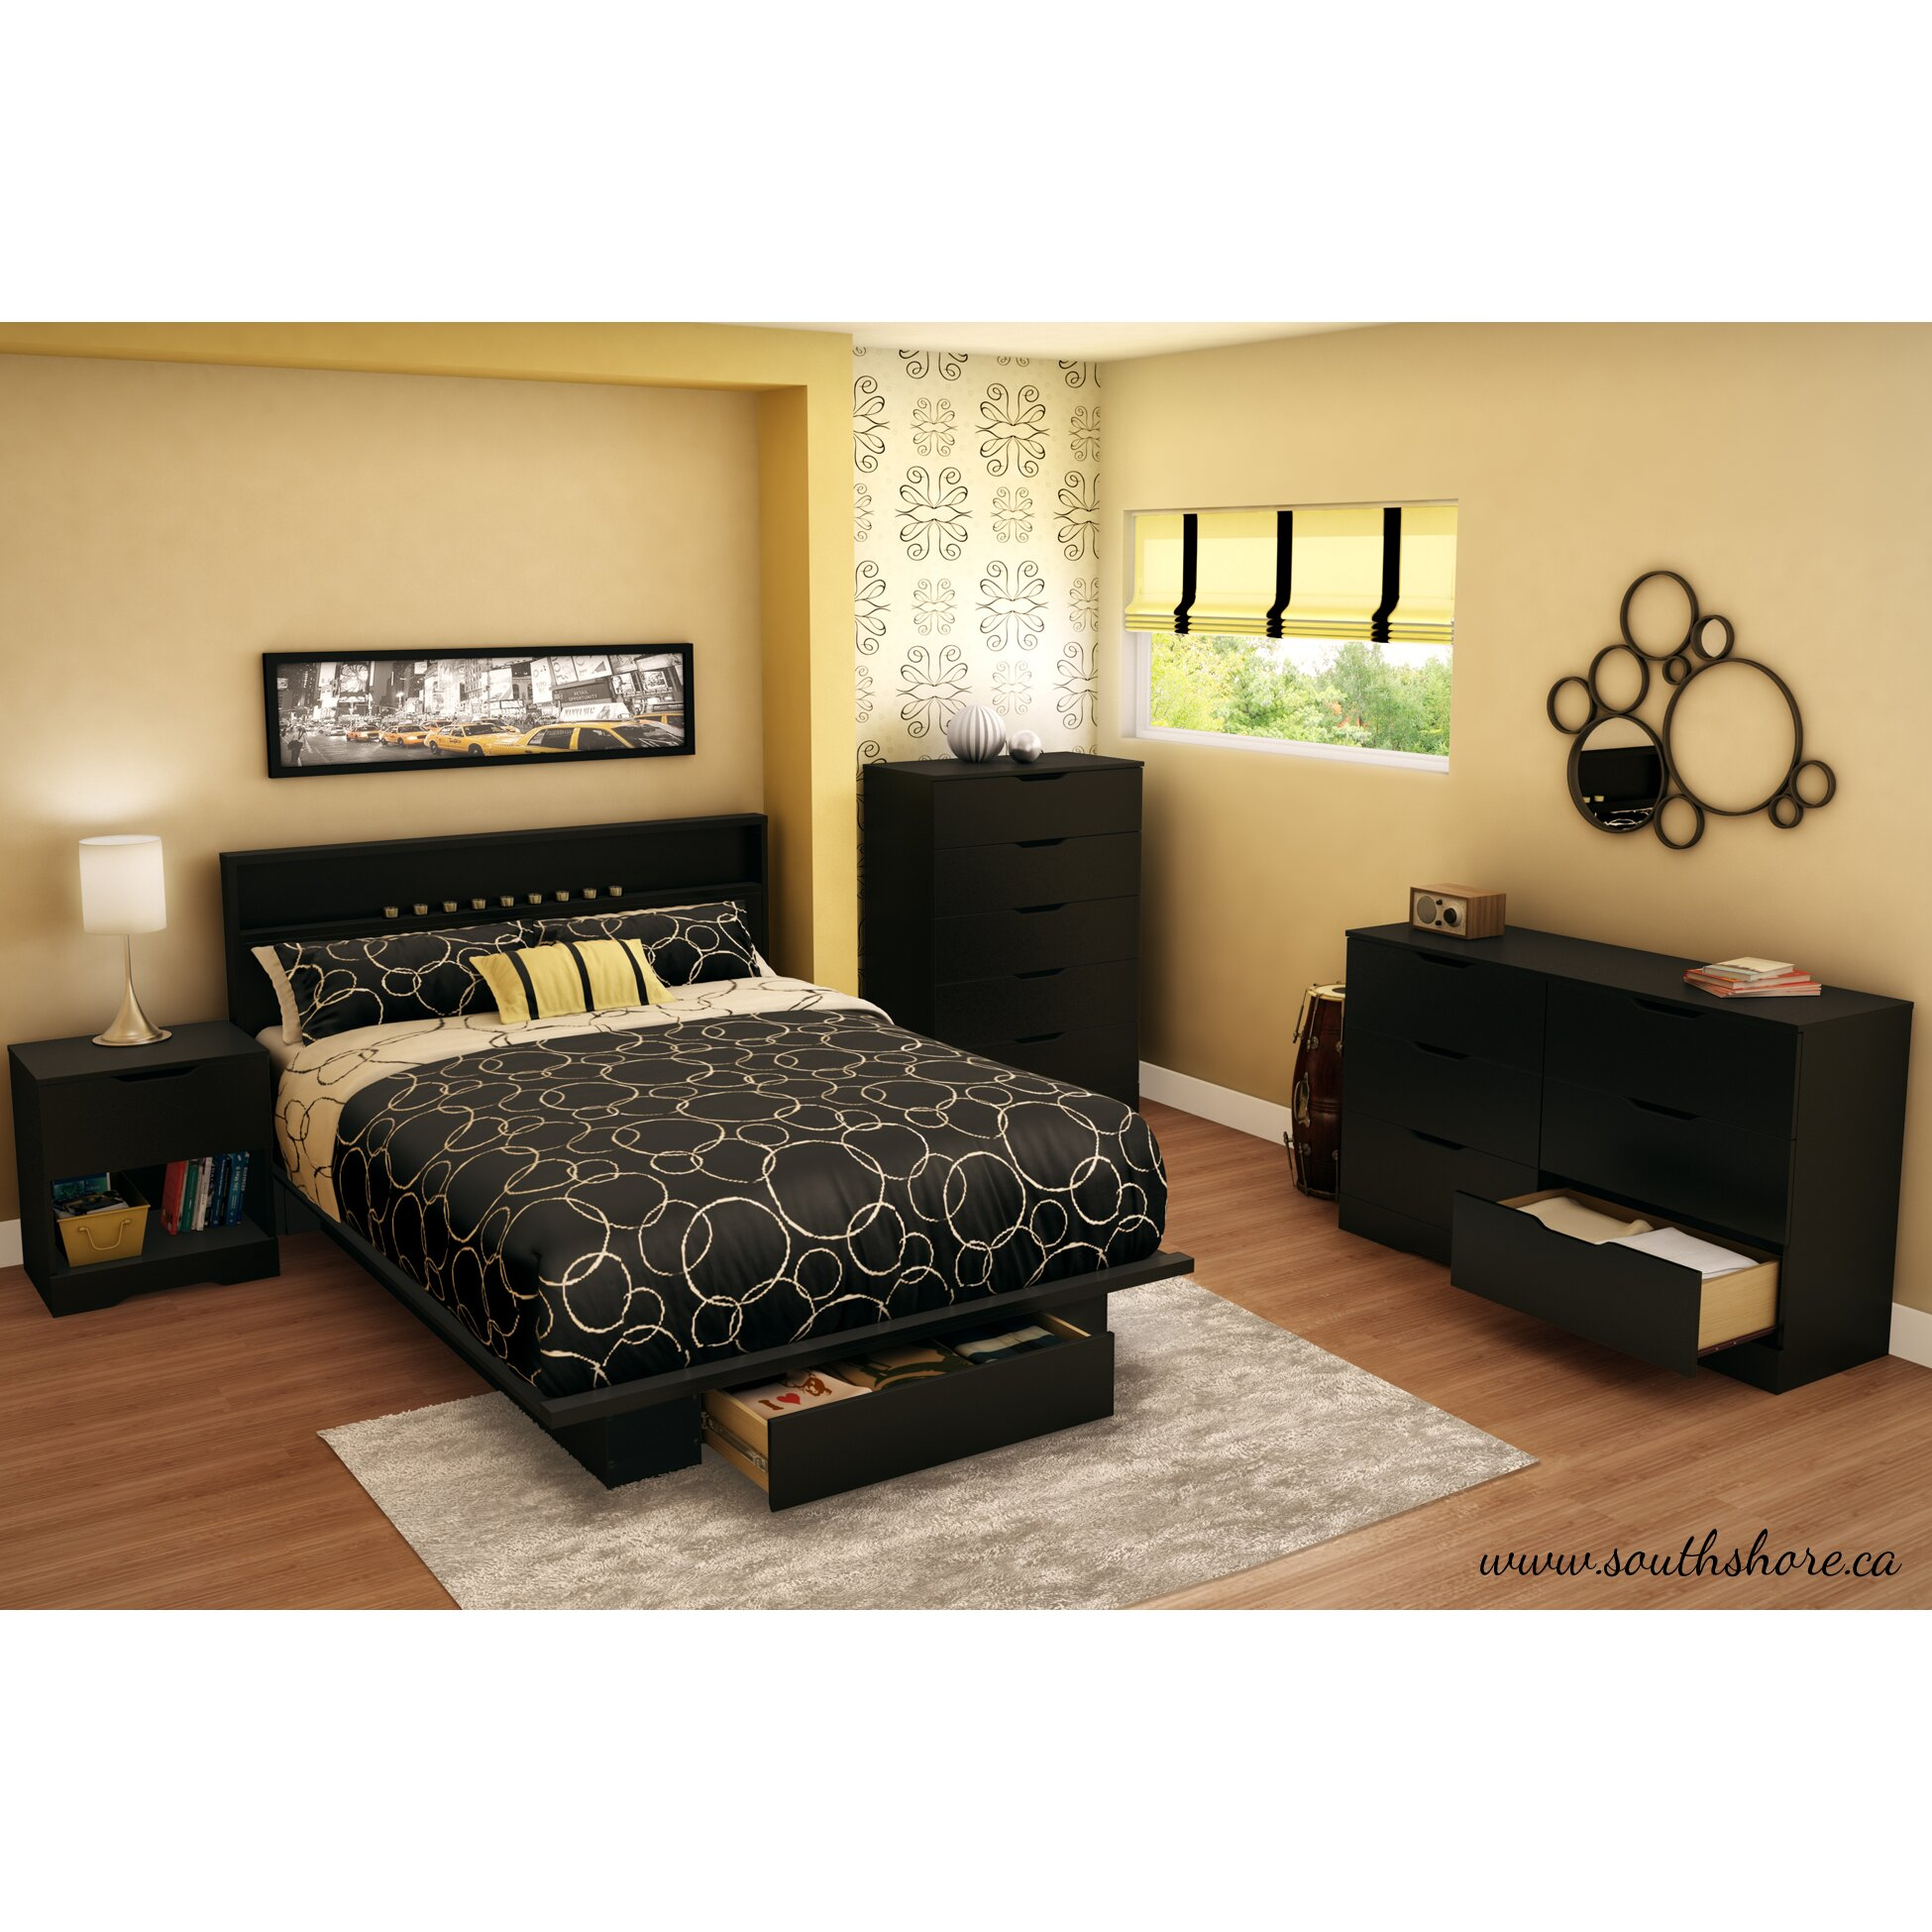 South Shore Bedroom Furniture South Shore Holland Platform Customizable Bedroom Set Reviews